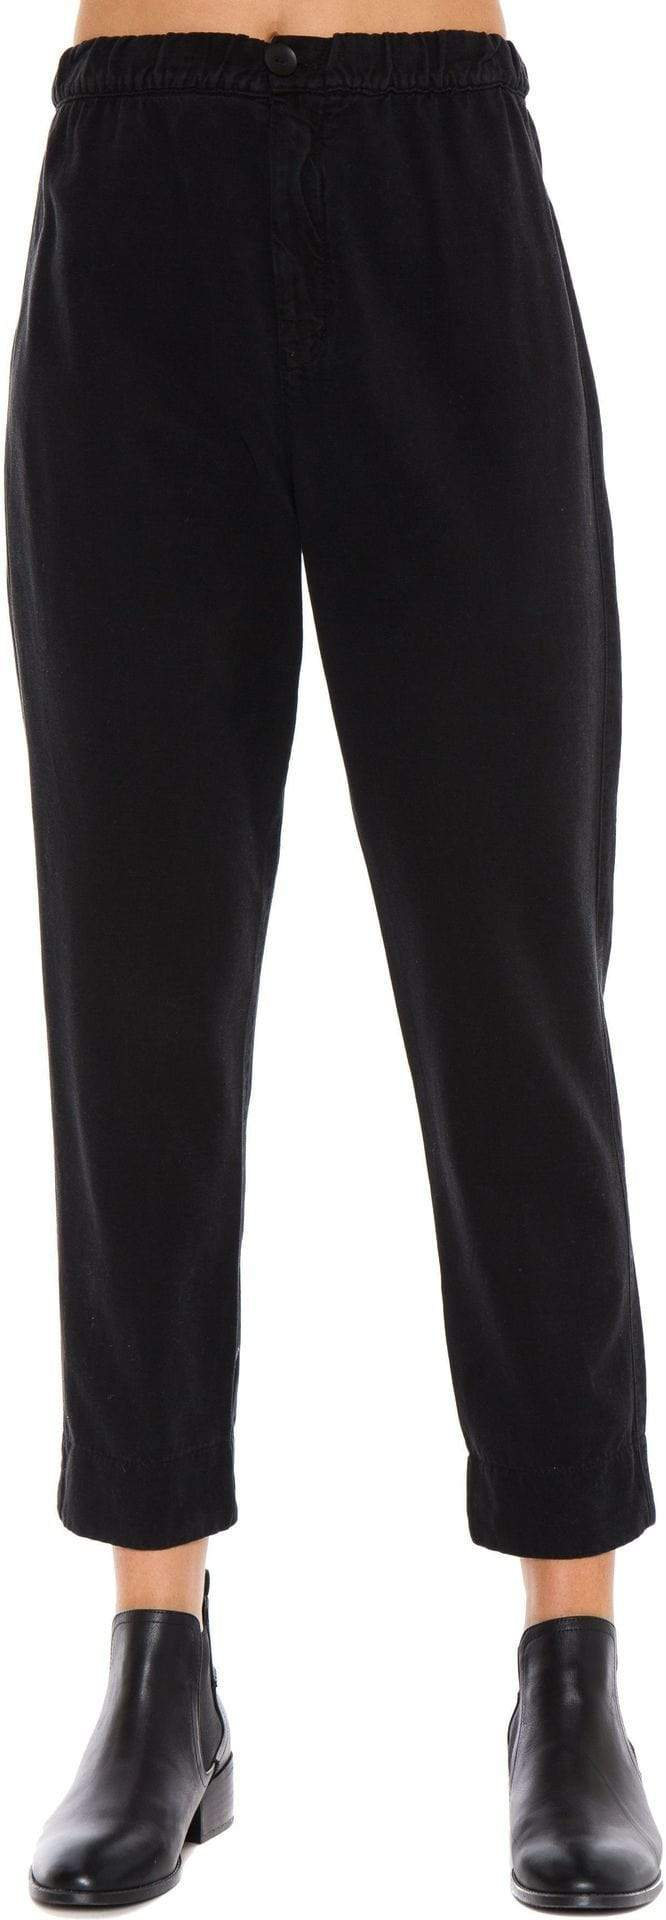 Tapered Notch Pant Black